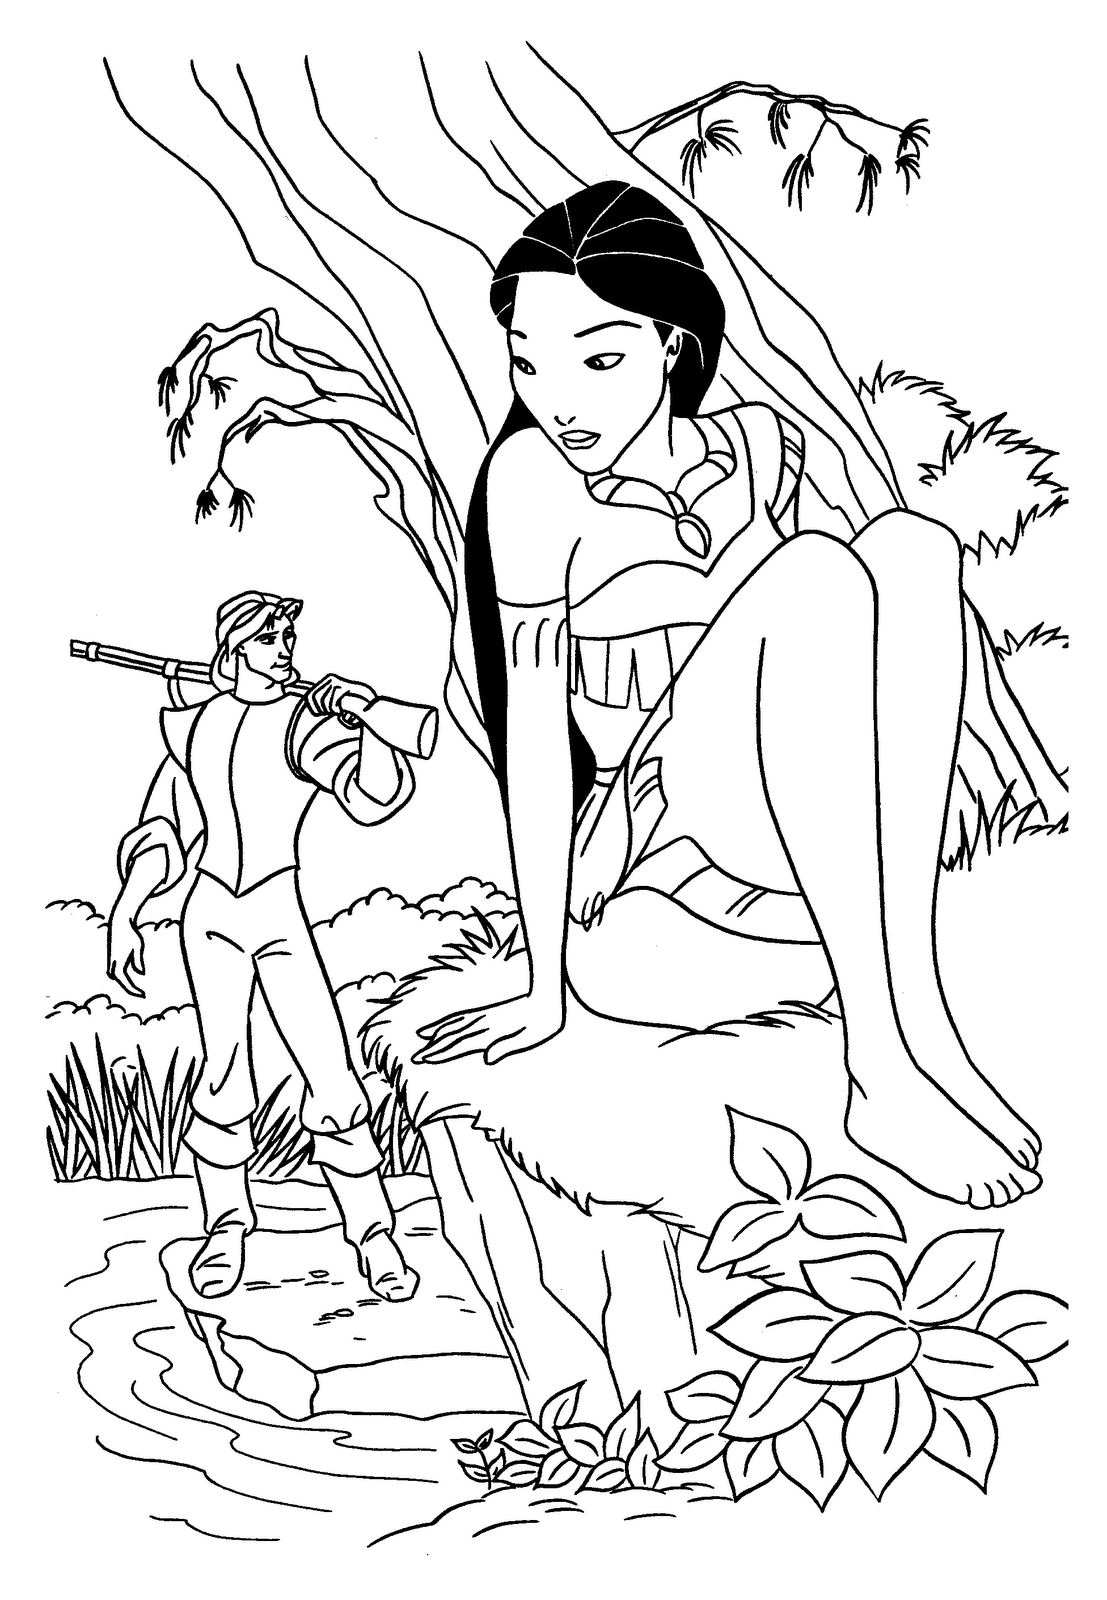 Disney coloring pages for adults - Free Printable Pocahontas Coloring Pages For Kids